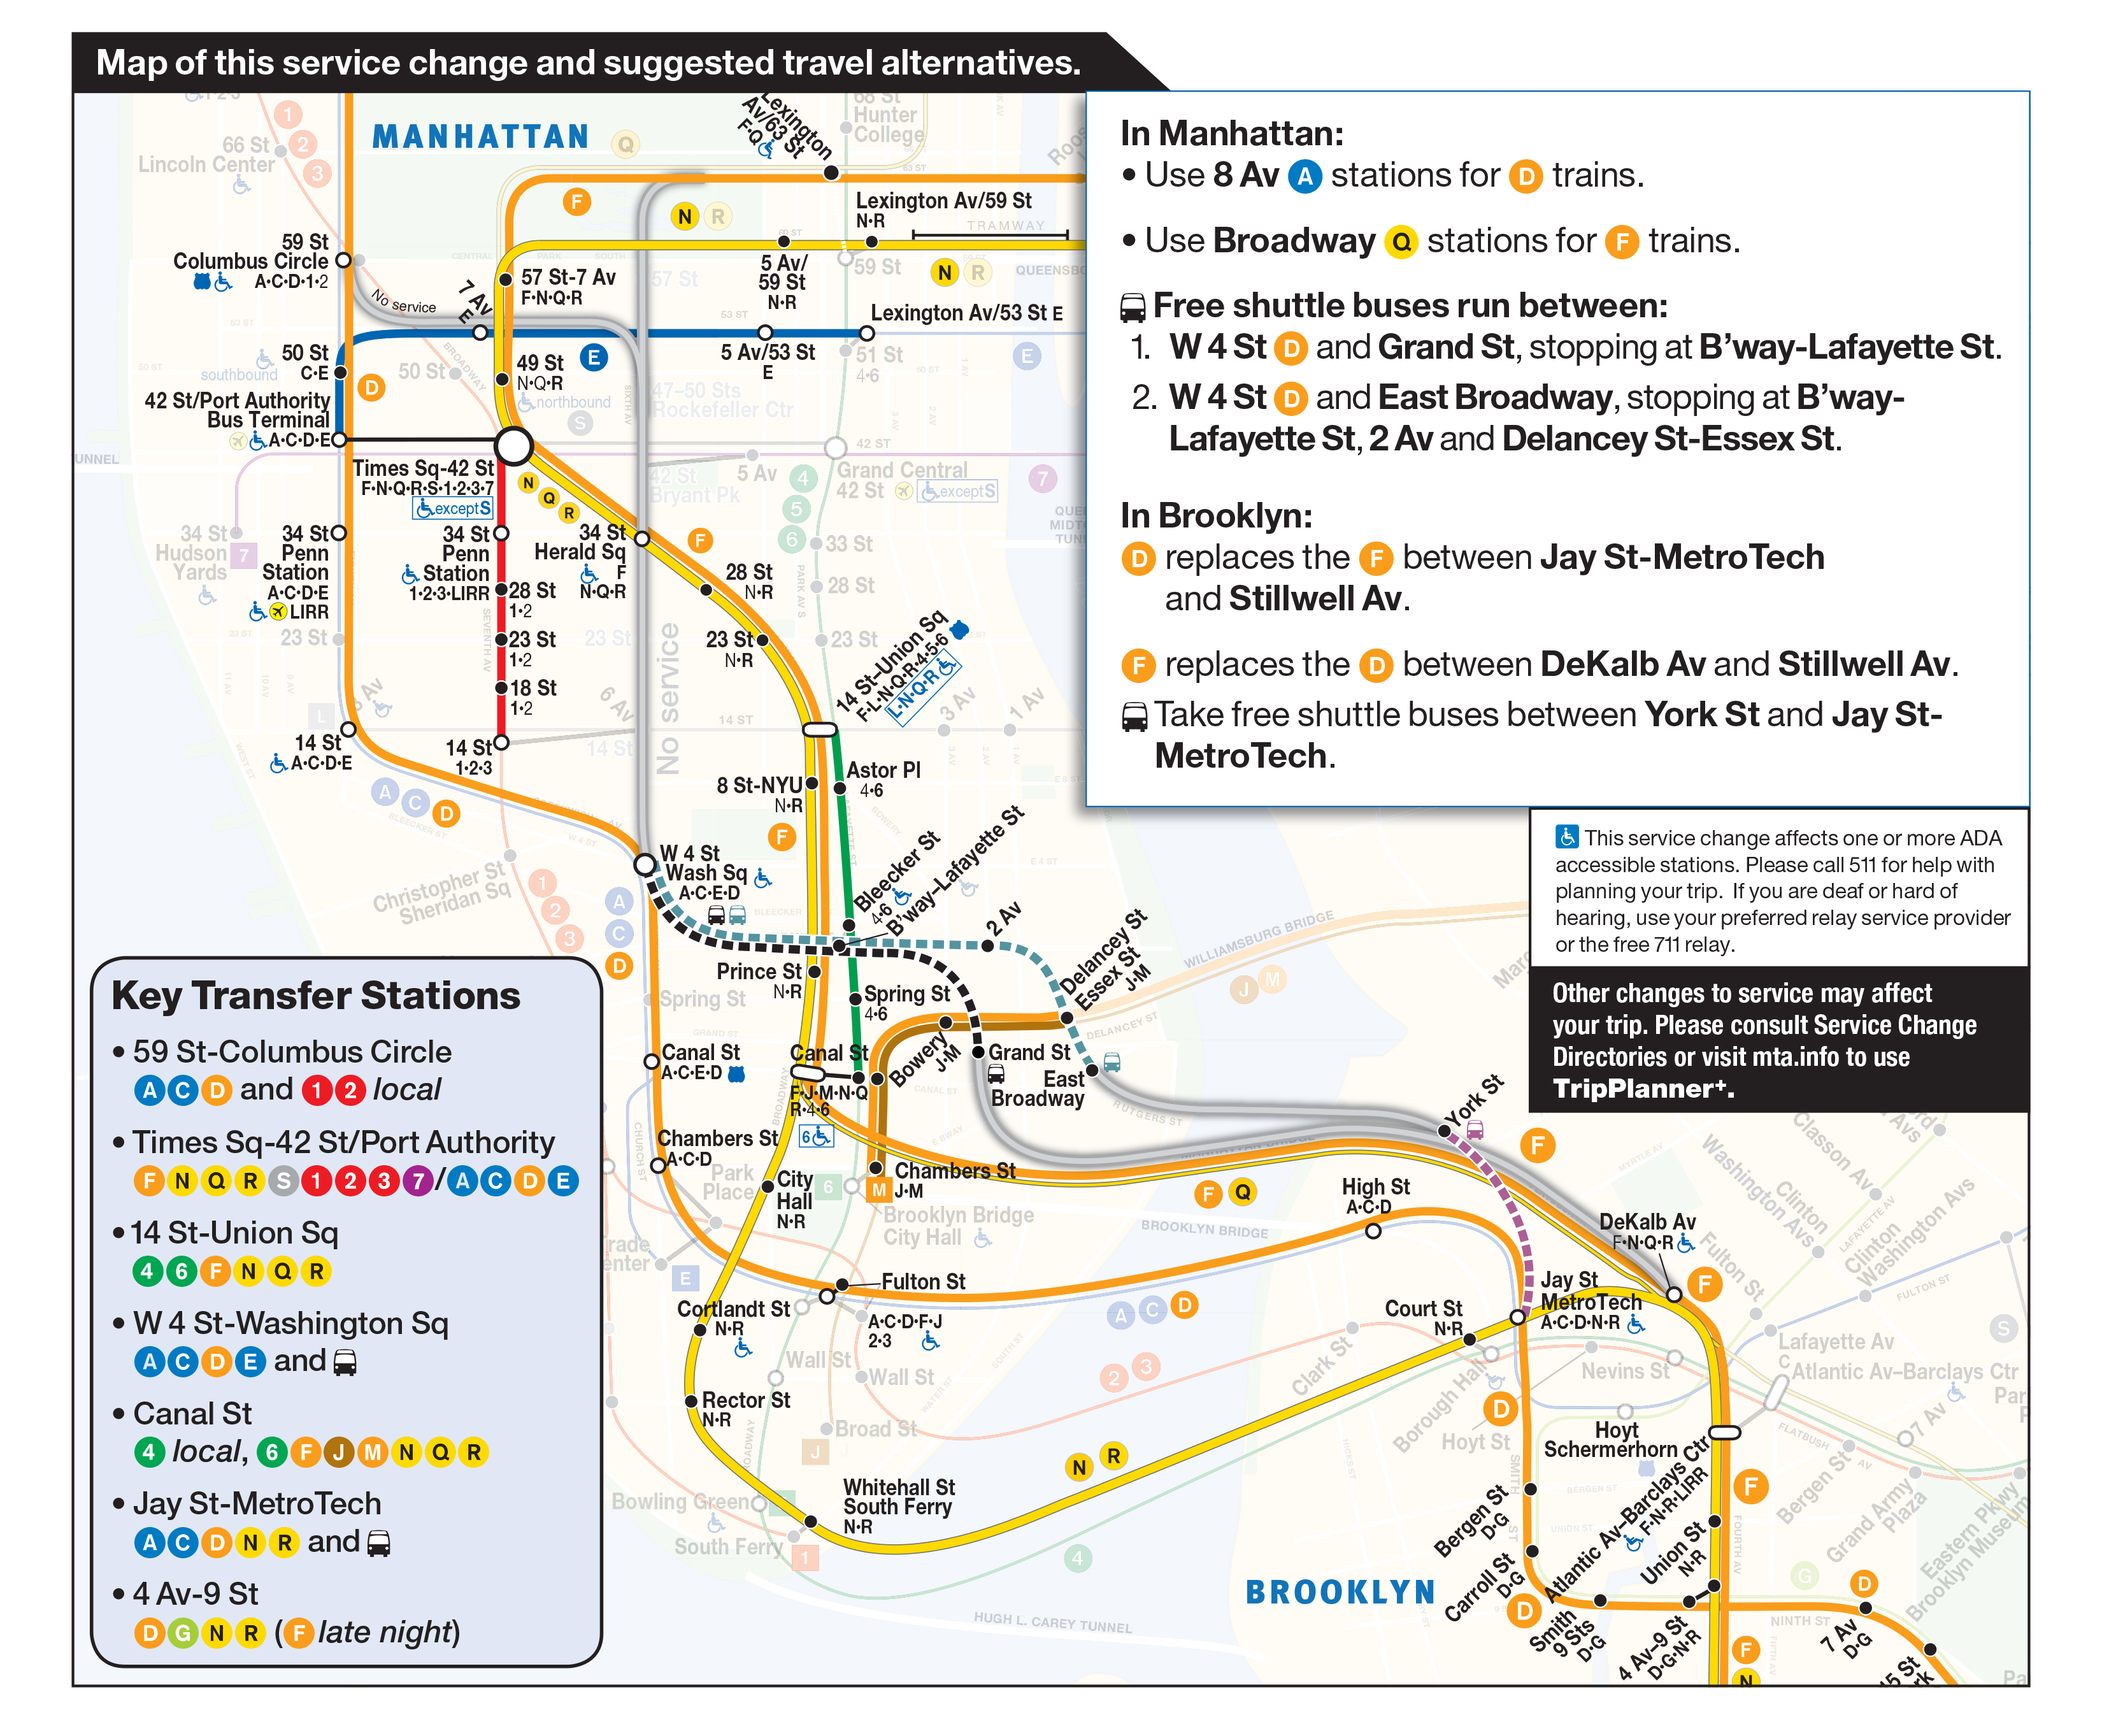 mta.info | WEEKEND DF on l train line map, new york f train map, mta r train map, new york train system map, bronx 5 train map, mta f train map, n r train map, mta e train map, ny city train map, subway e train map, new york city train map, l train subway map,